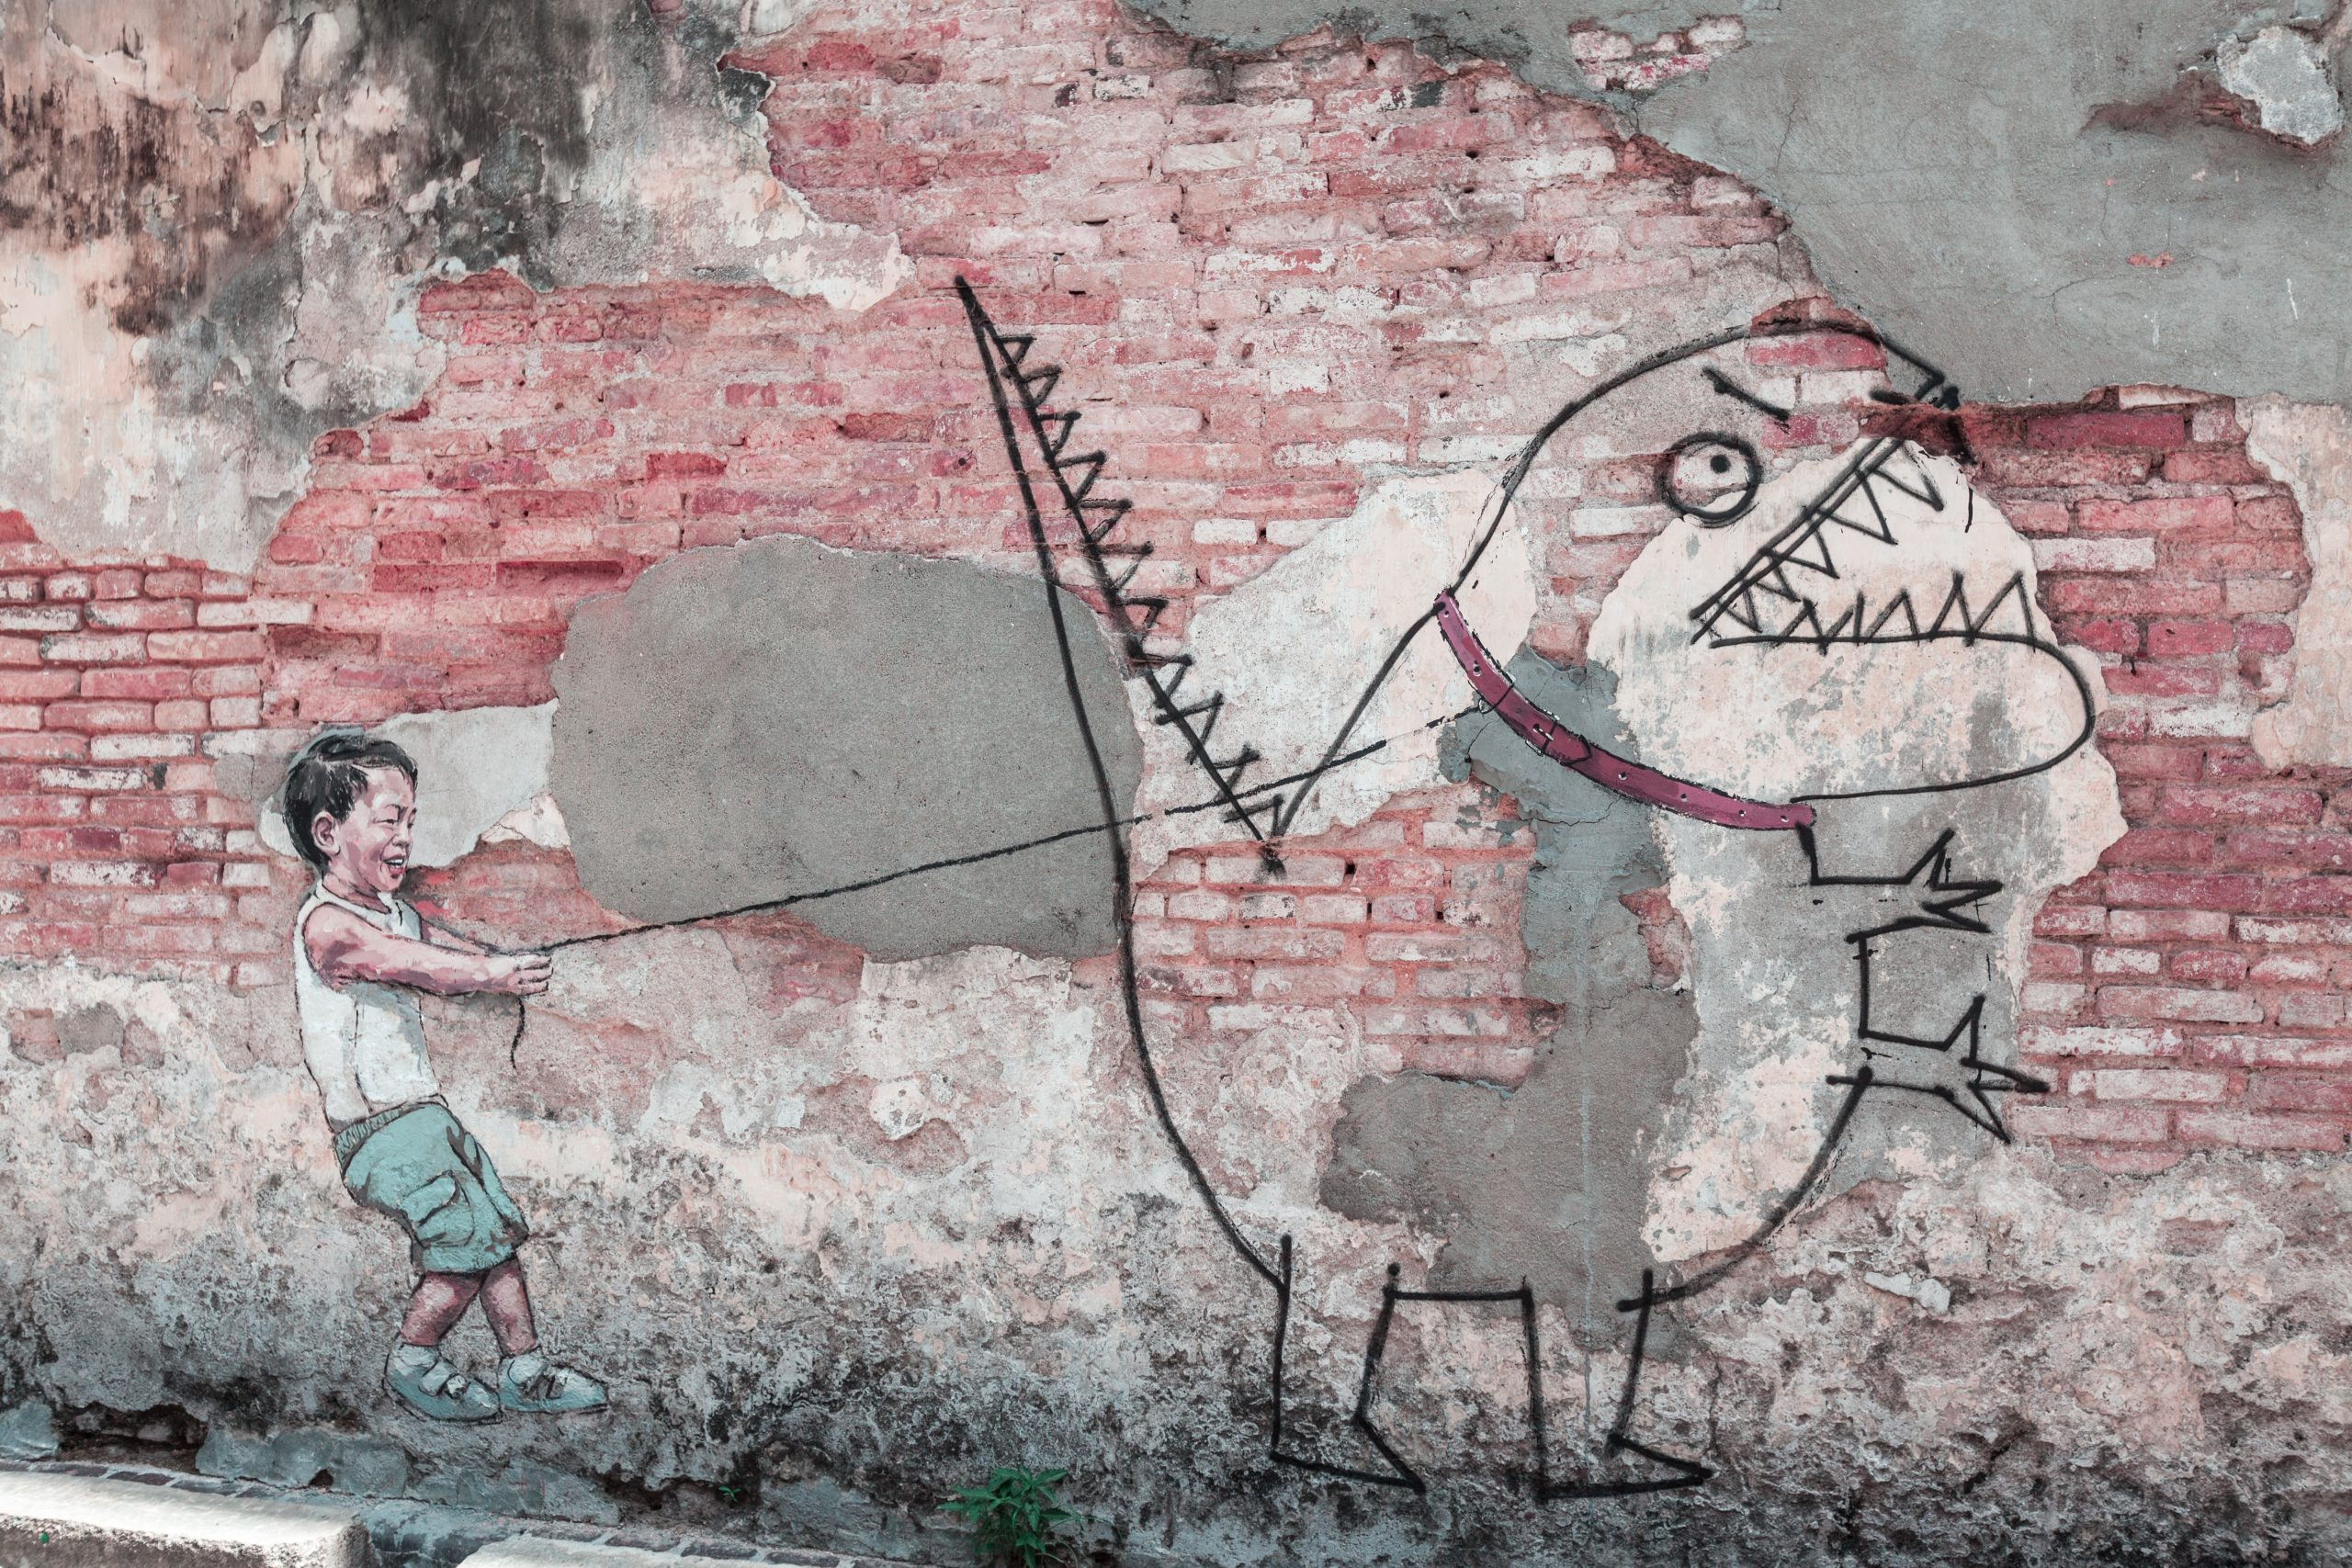 Graffiti image of a child with a monster on a leash.